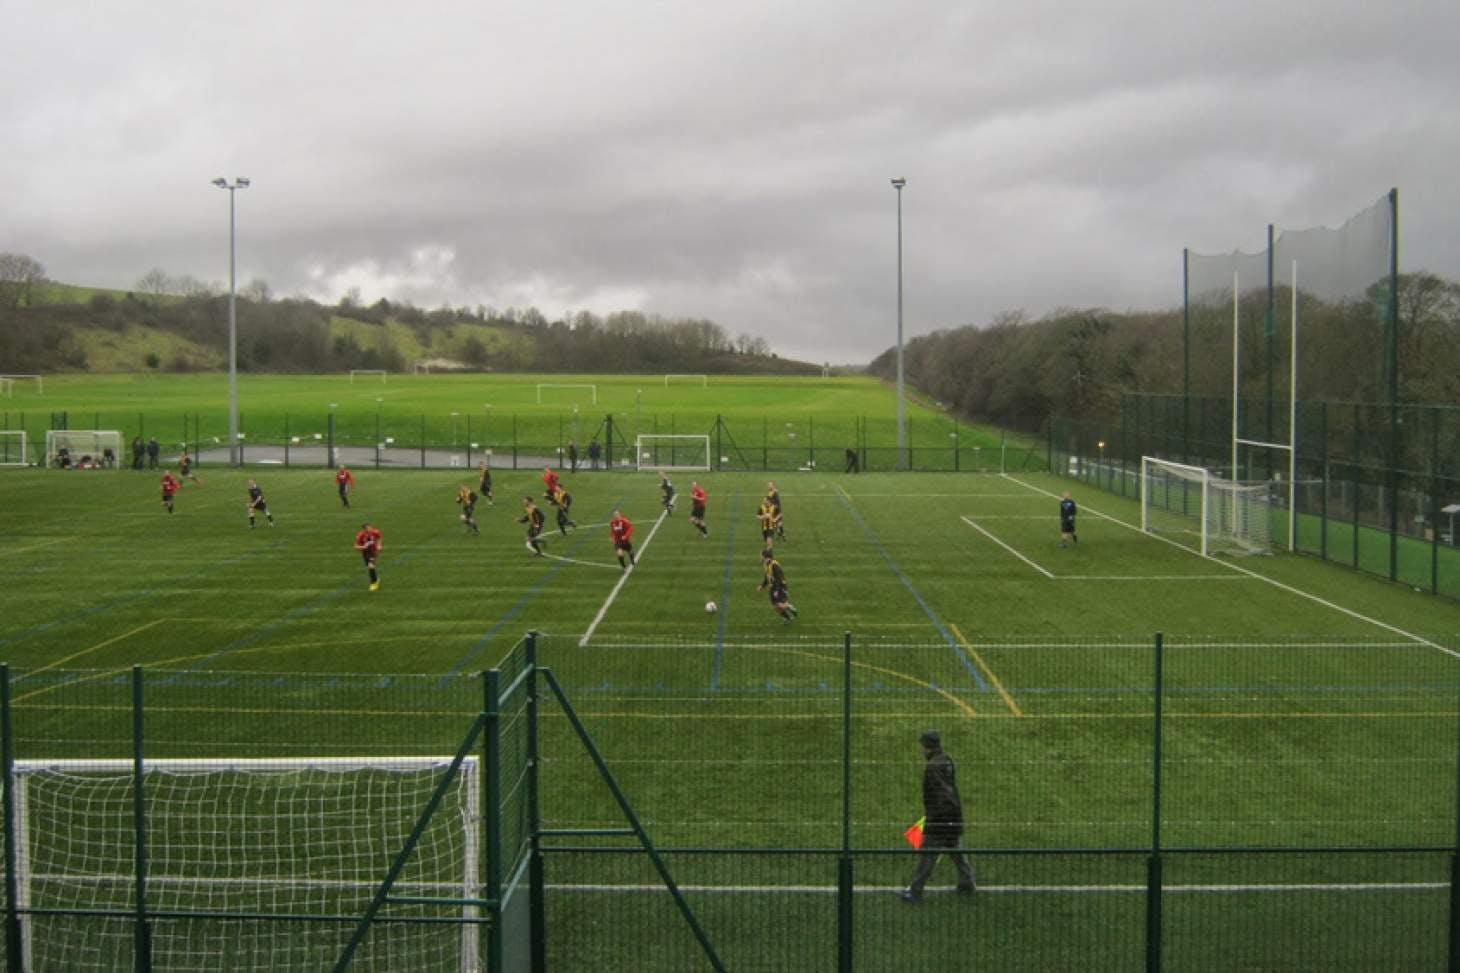 University Of Brighton (Falmer Campus) 7 a side | 3G Astroturf football pitch